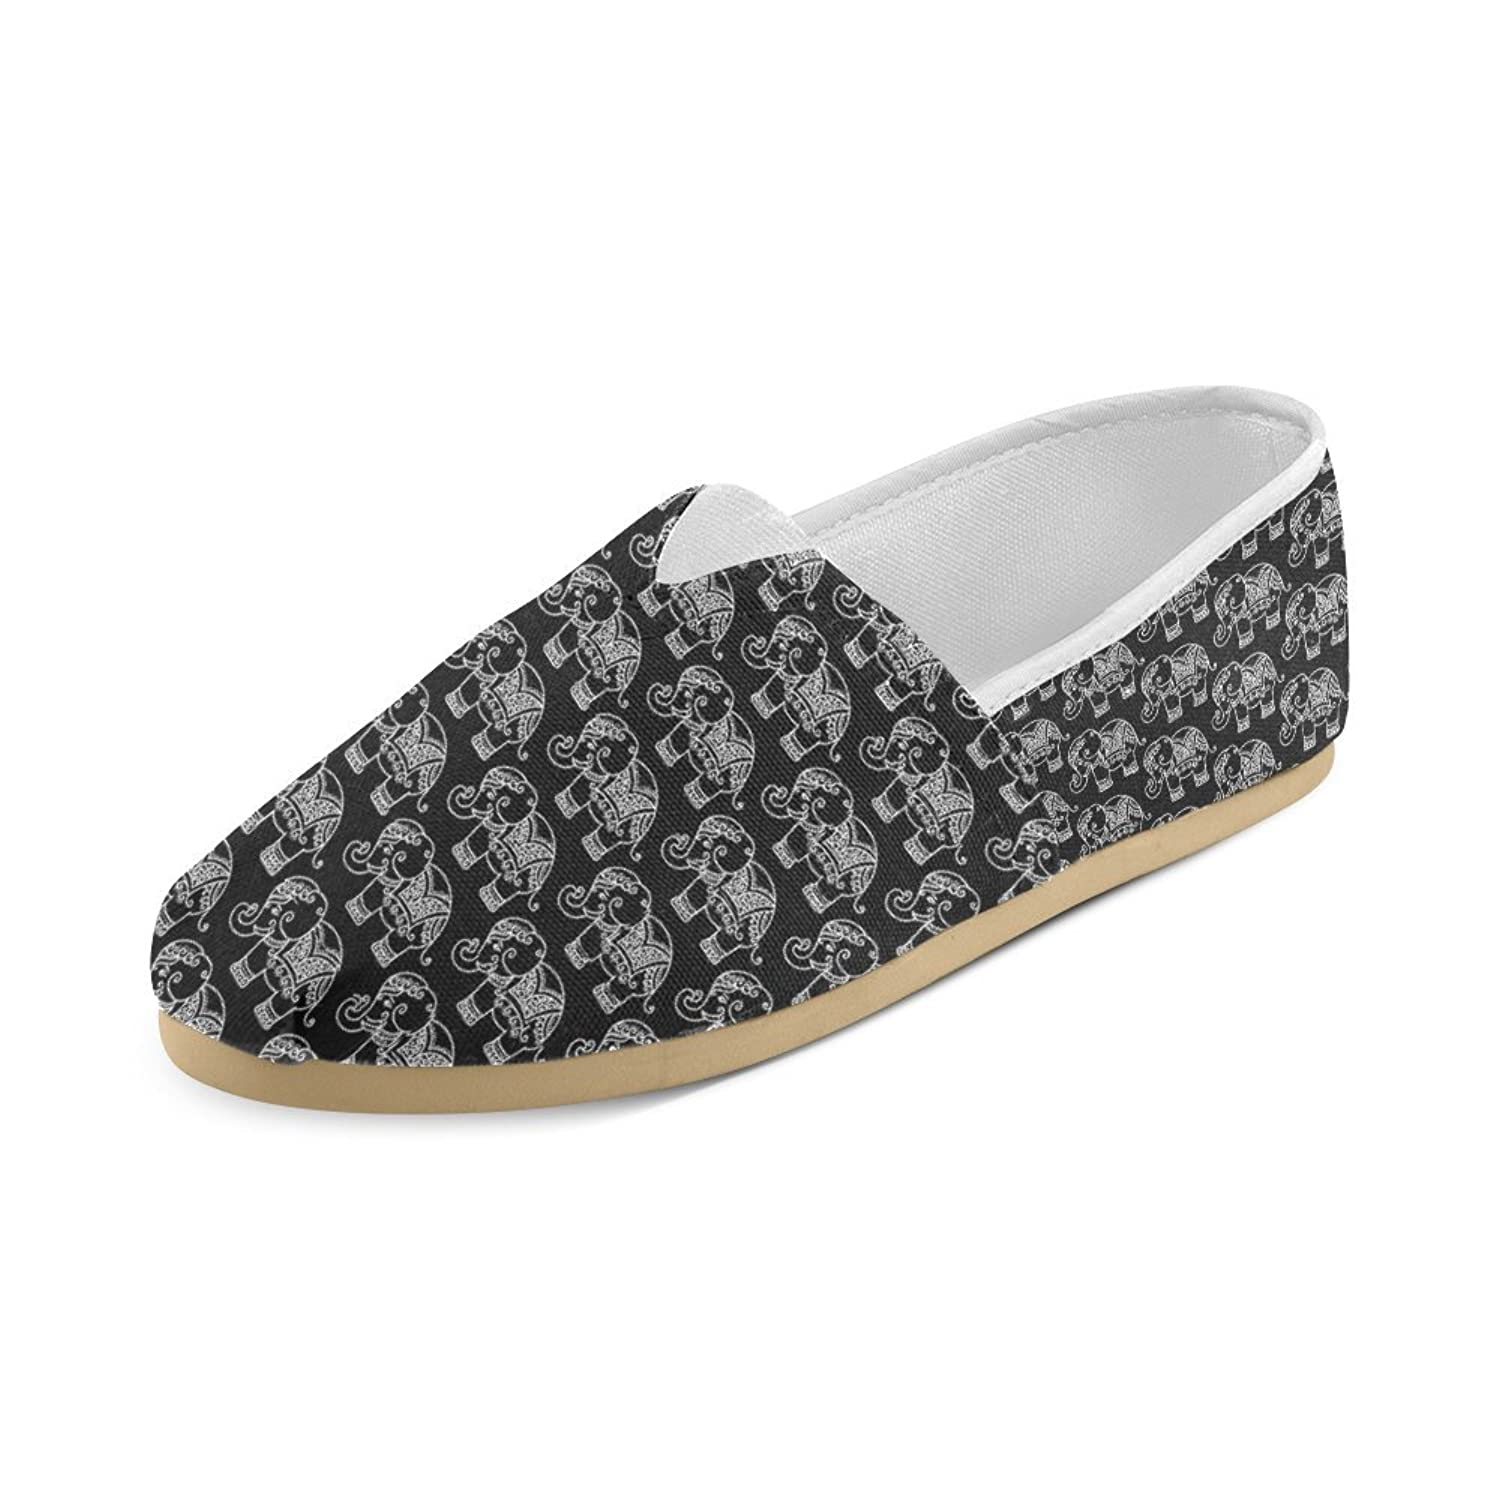 Shoes Black And White Elephants Pattern Casual Canvas Loafer For Girl Or Women